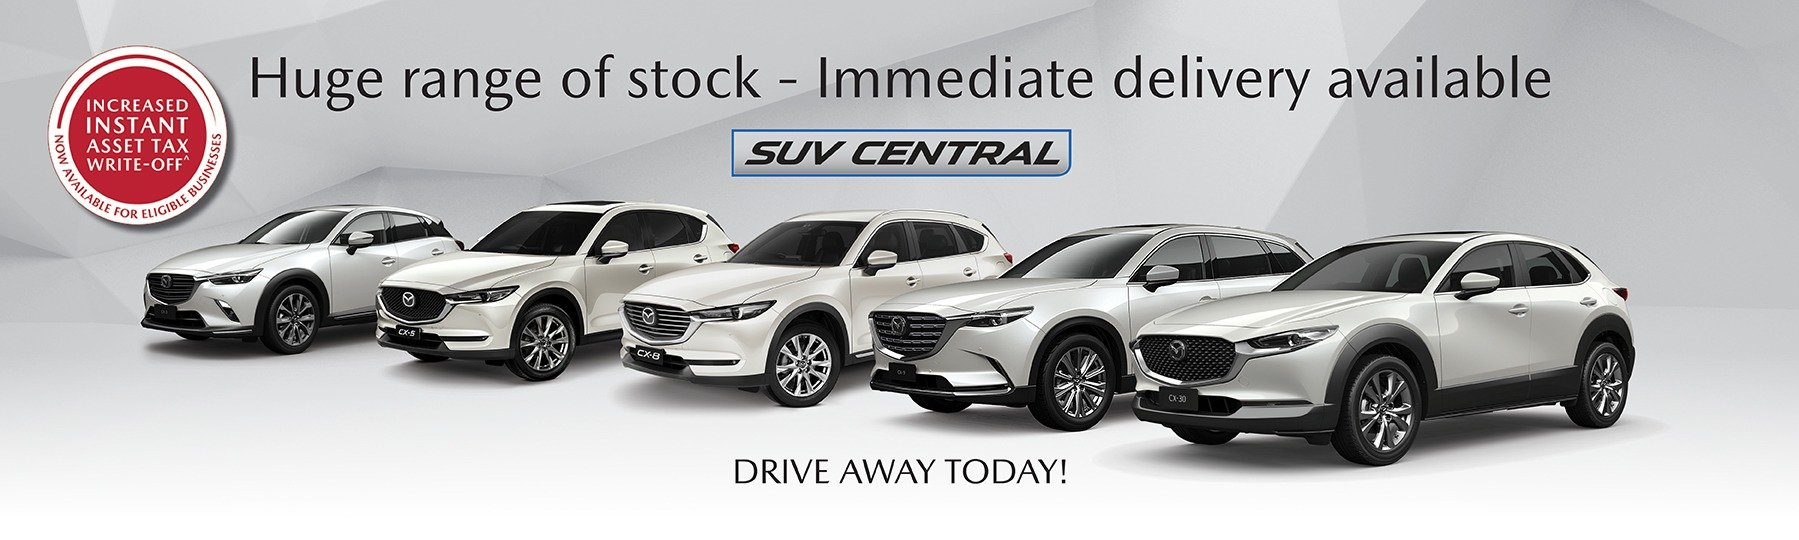 SUV Central